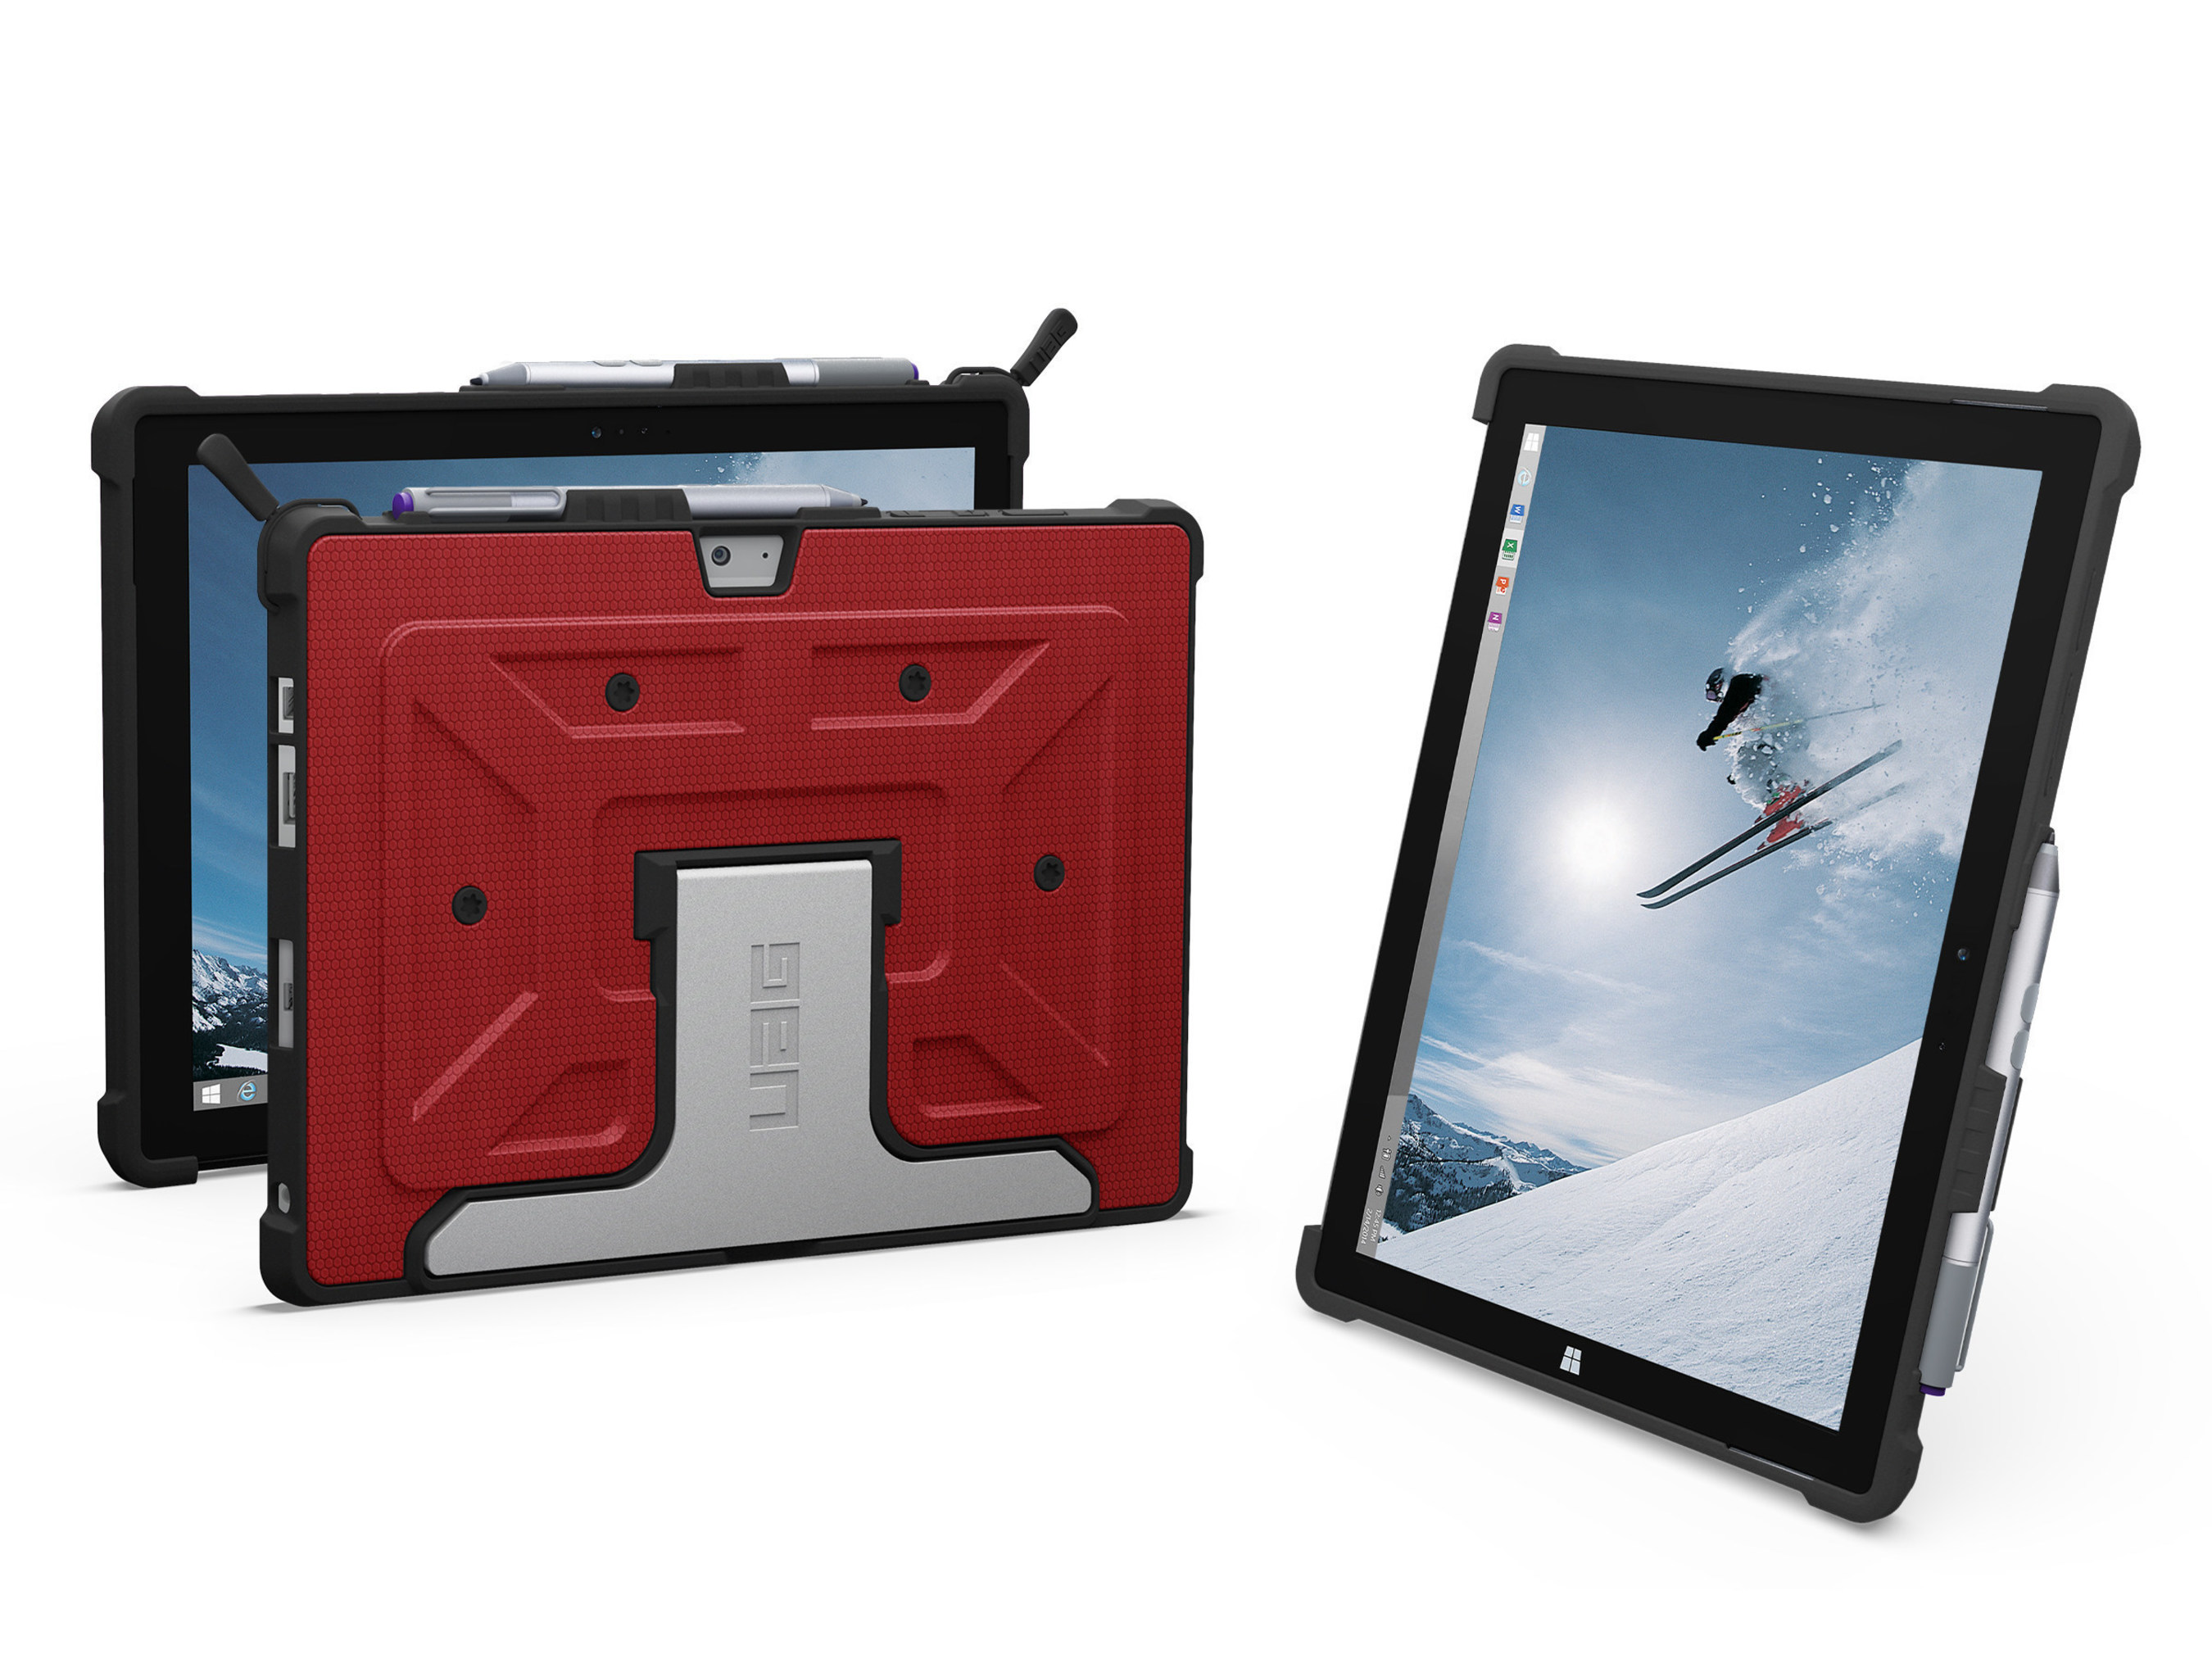 URBAN ARMOR GEAR DEBUTS RUGGED DESIGN TO ENSURE YOUR 'SURFACE' IS COVEREDUAG Ensures Robust Protection with its Military-Tough Cases for the NEW Microsoft Surface 3 Tablet